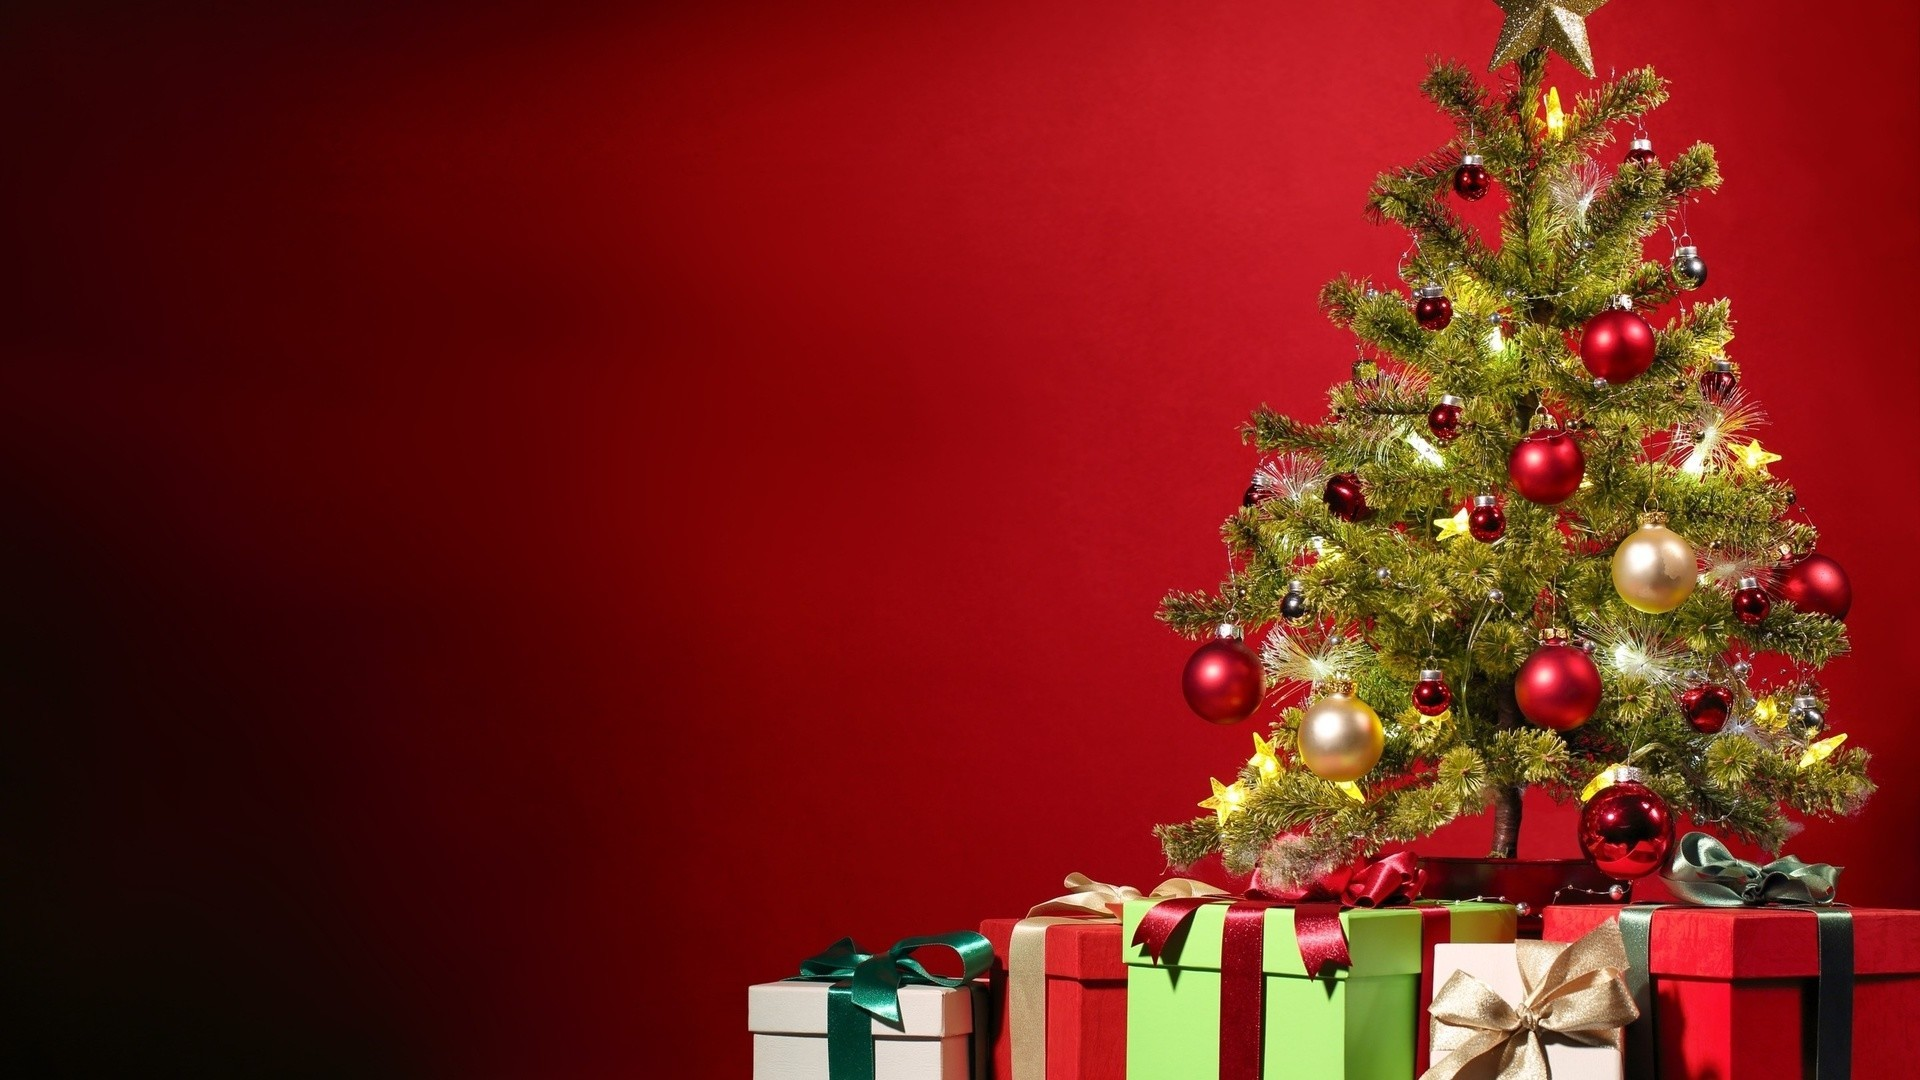 Merry Christmas Wallpaper HD Download   Wallpapers, Backgrounds